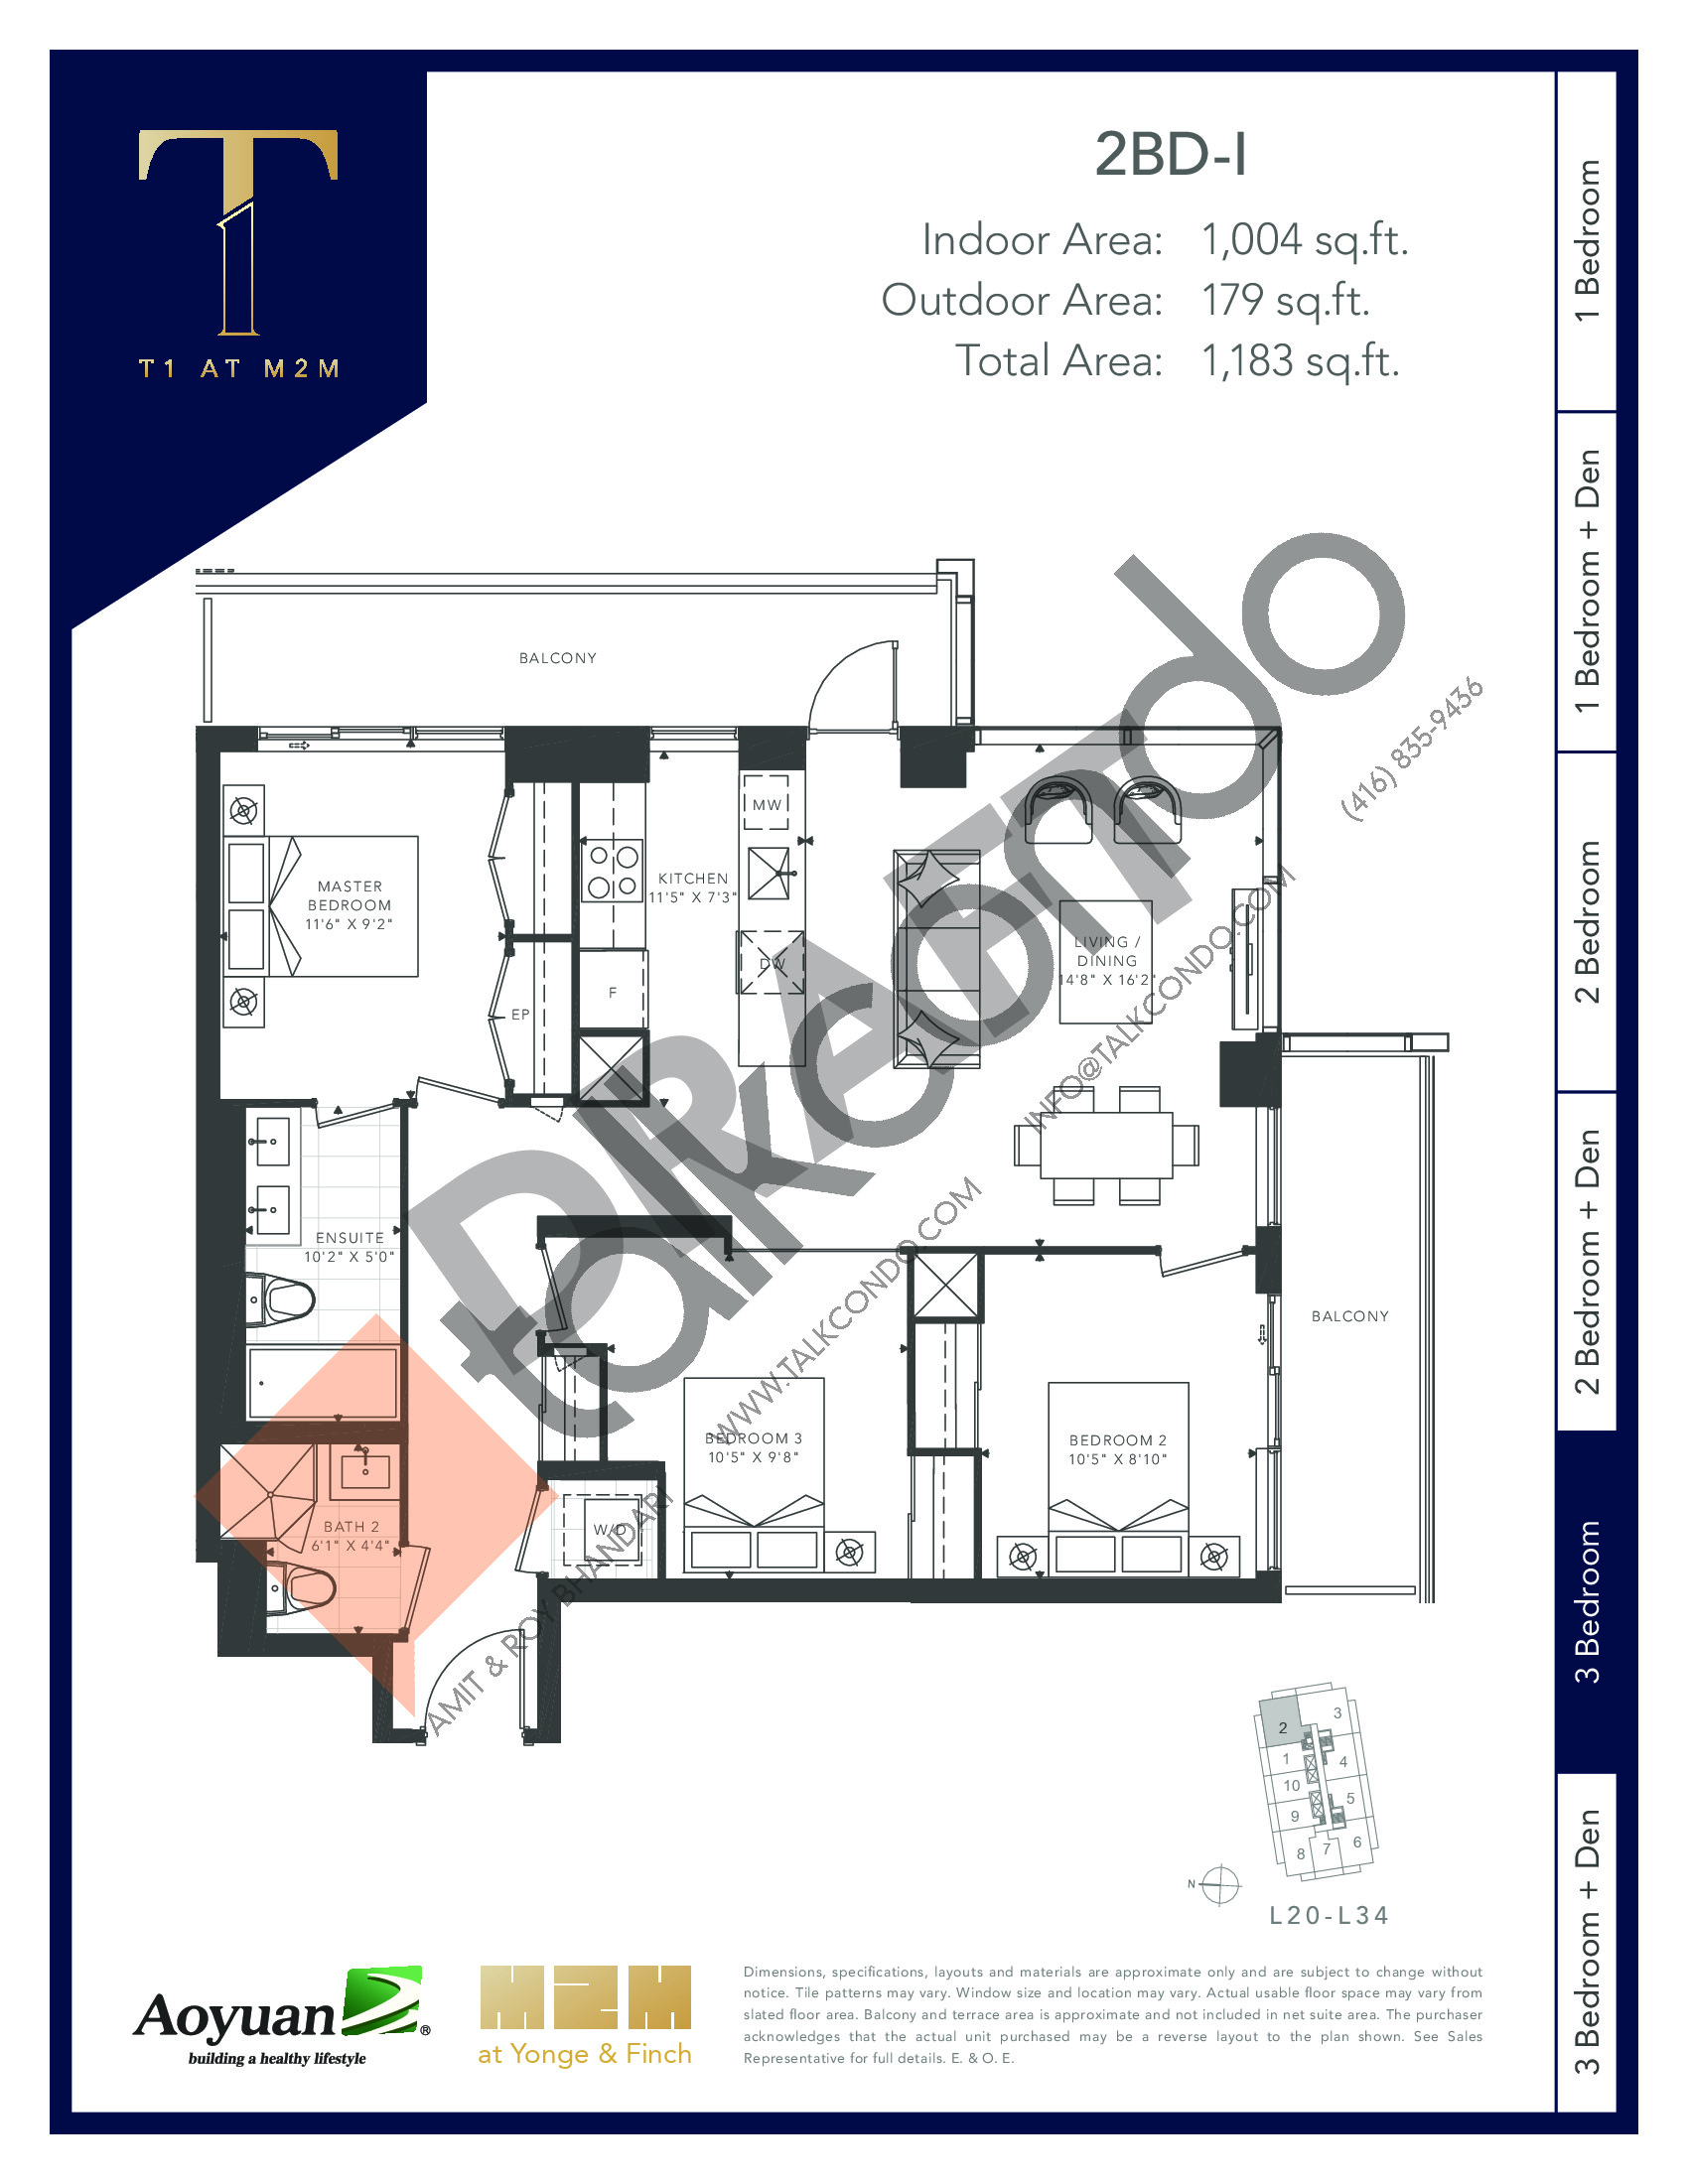 2BD-I (Tower) Floor Plan at T1 at M2M Condos - 1004 sq.ft